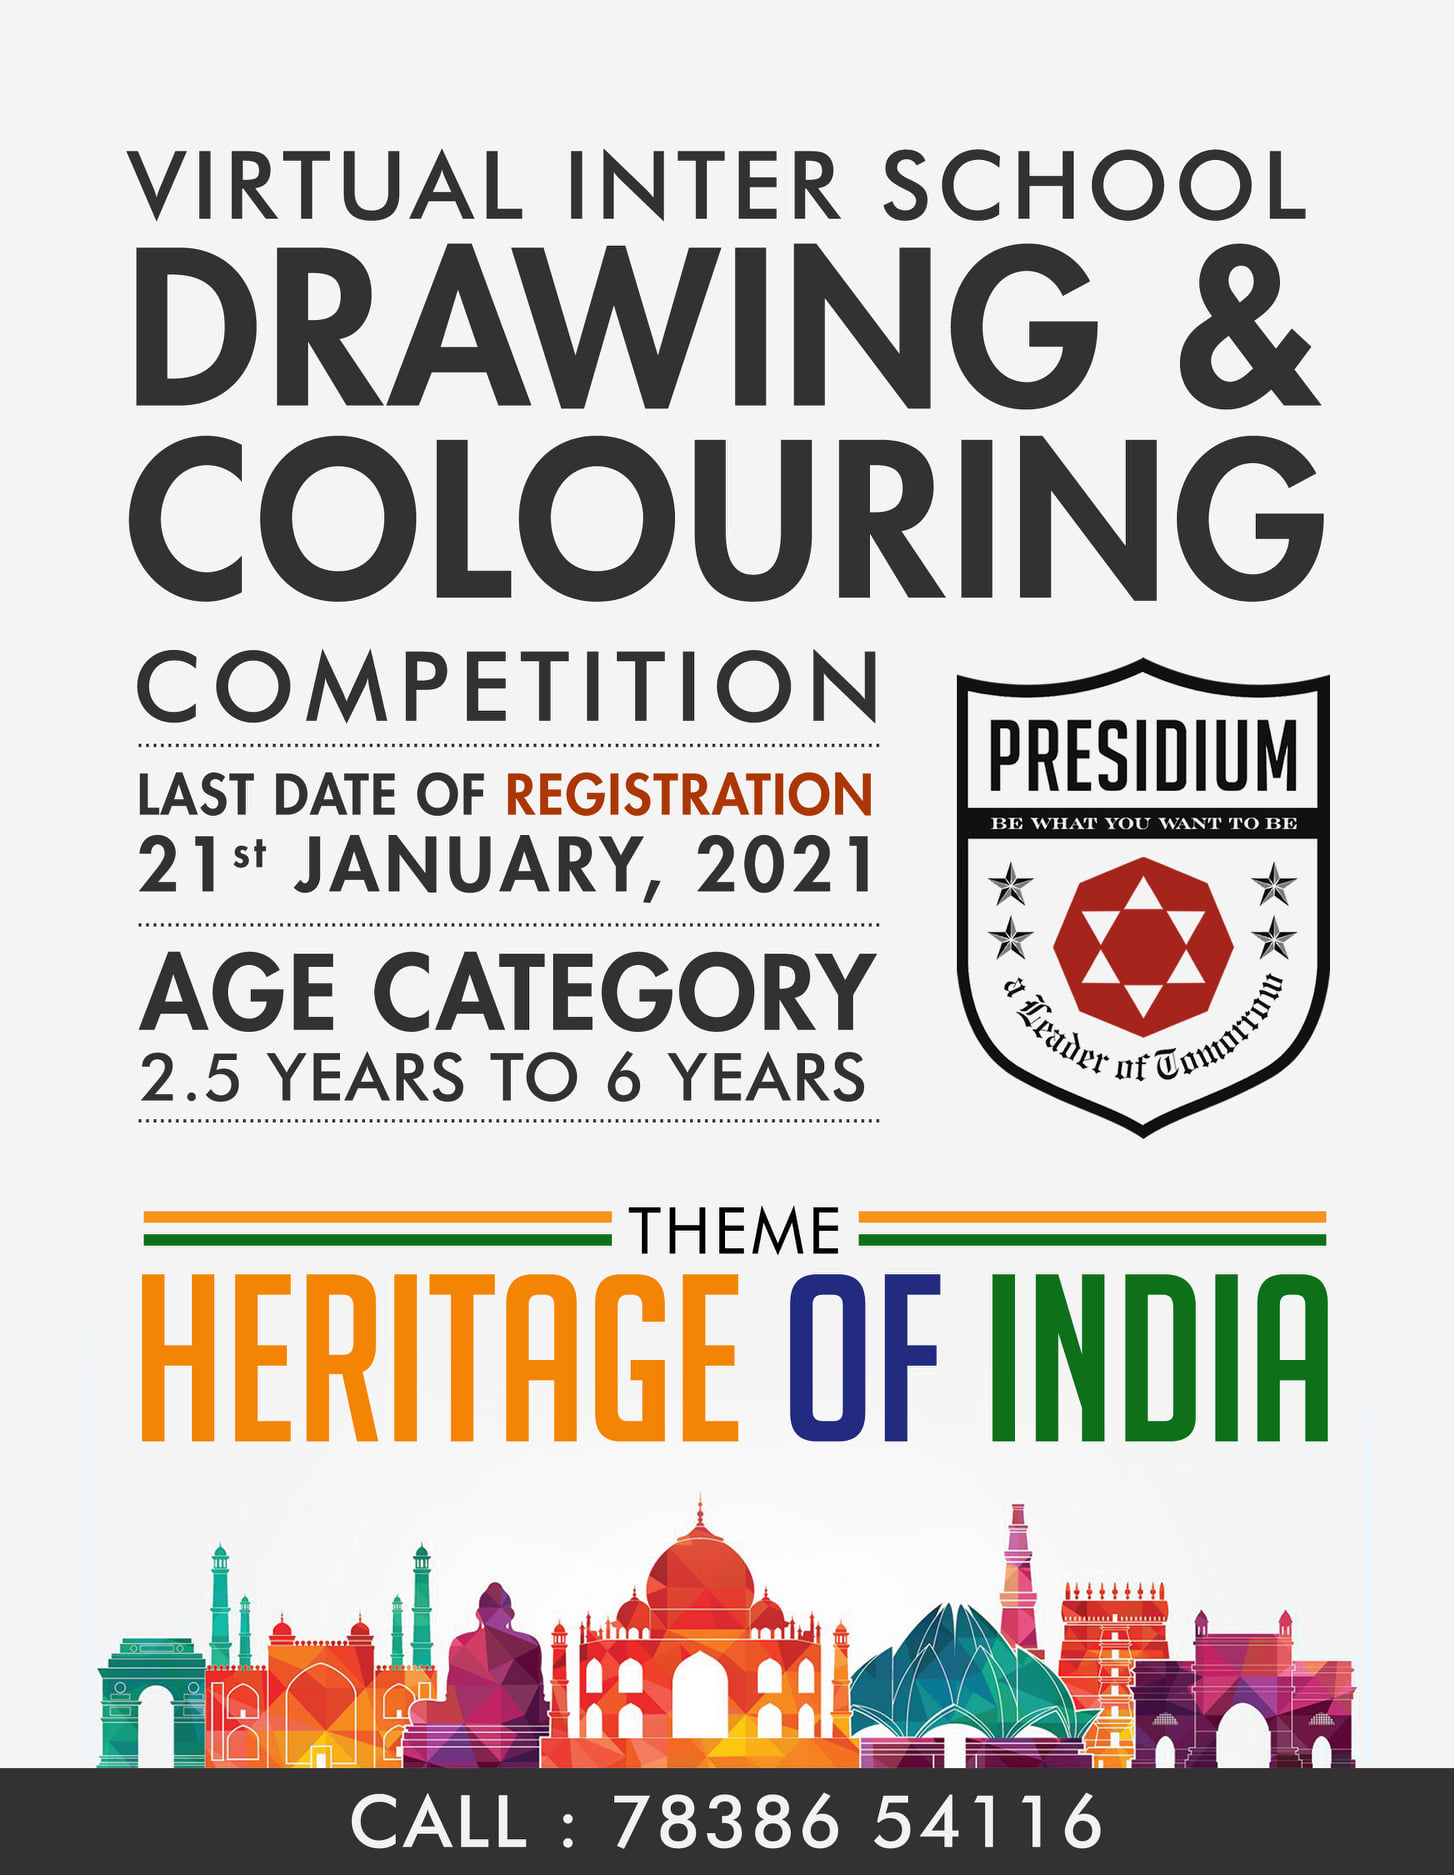 A VIRTUAL INTER SCHOOL DRAWING & COLOURING COMPETITION